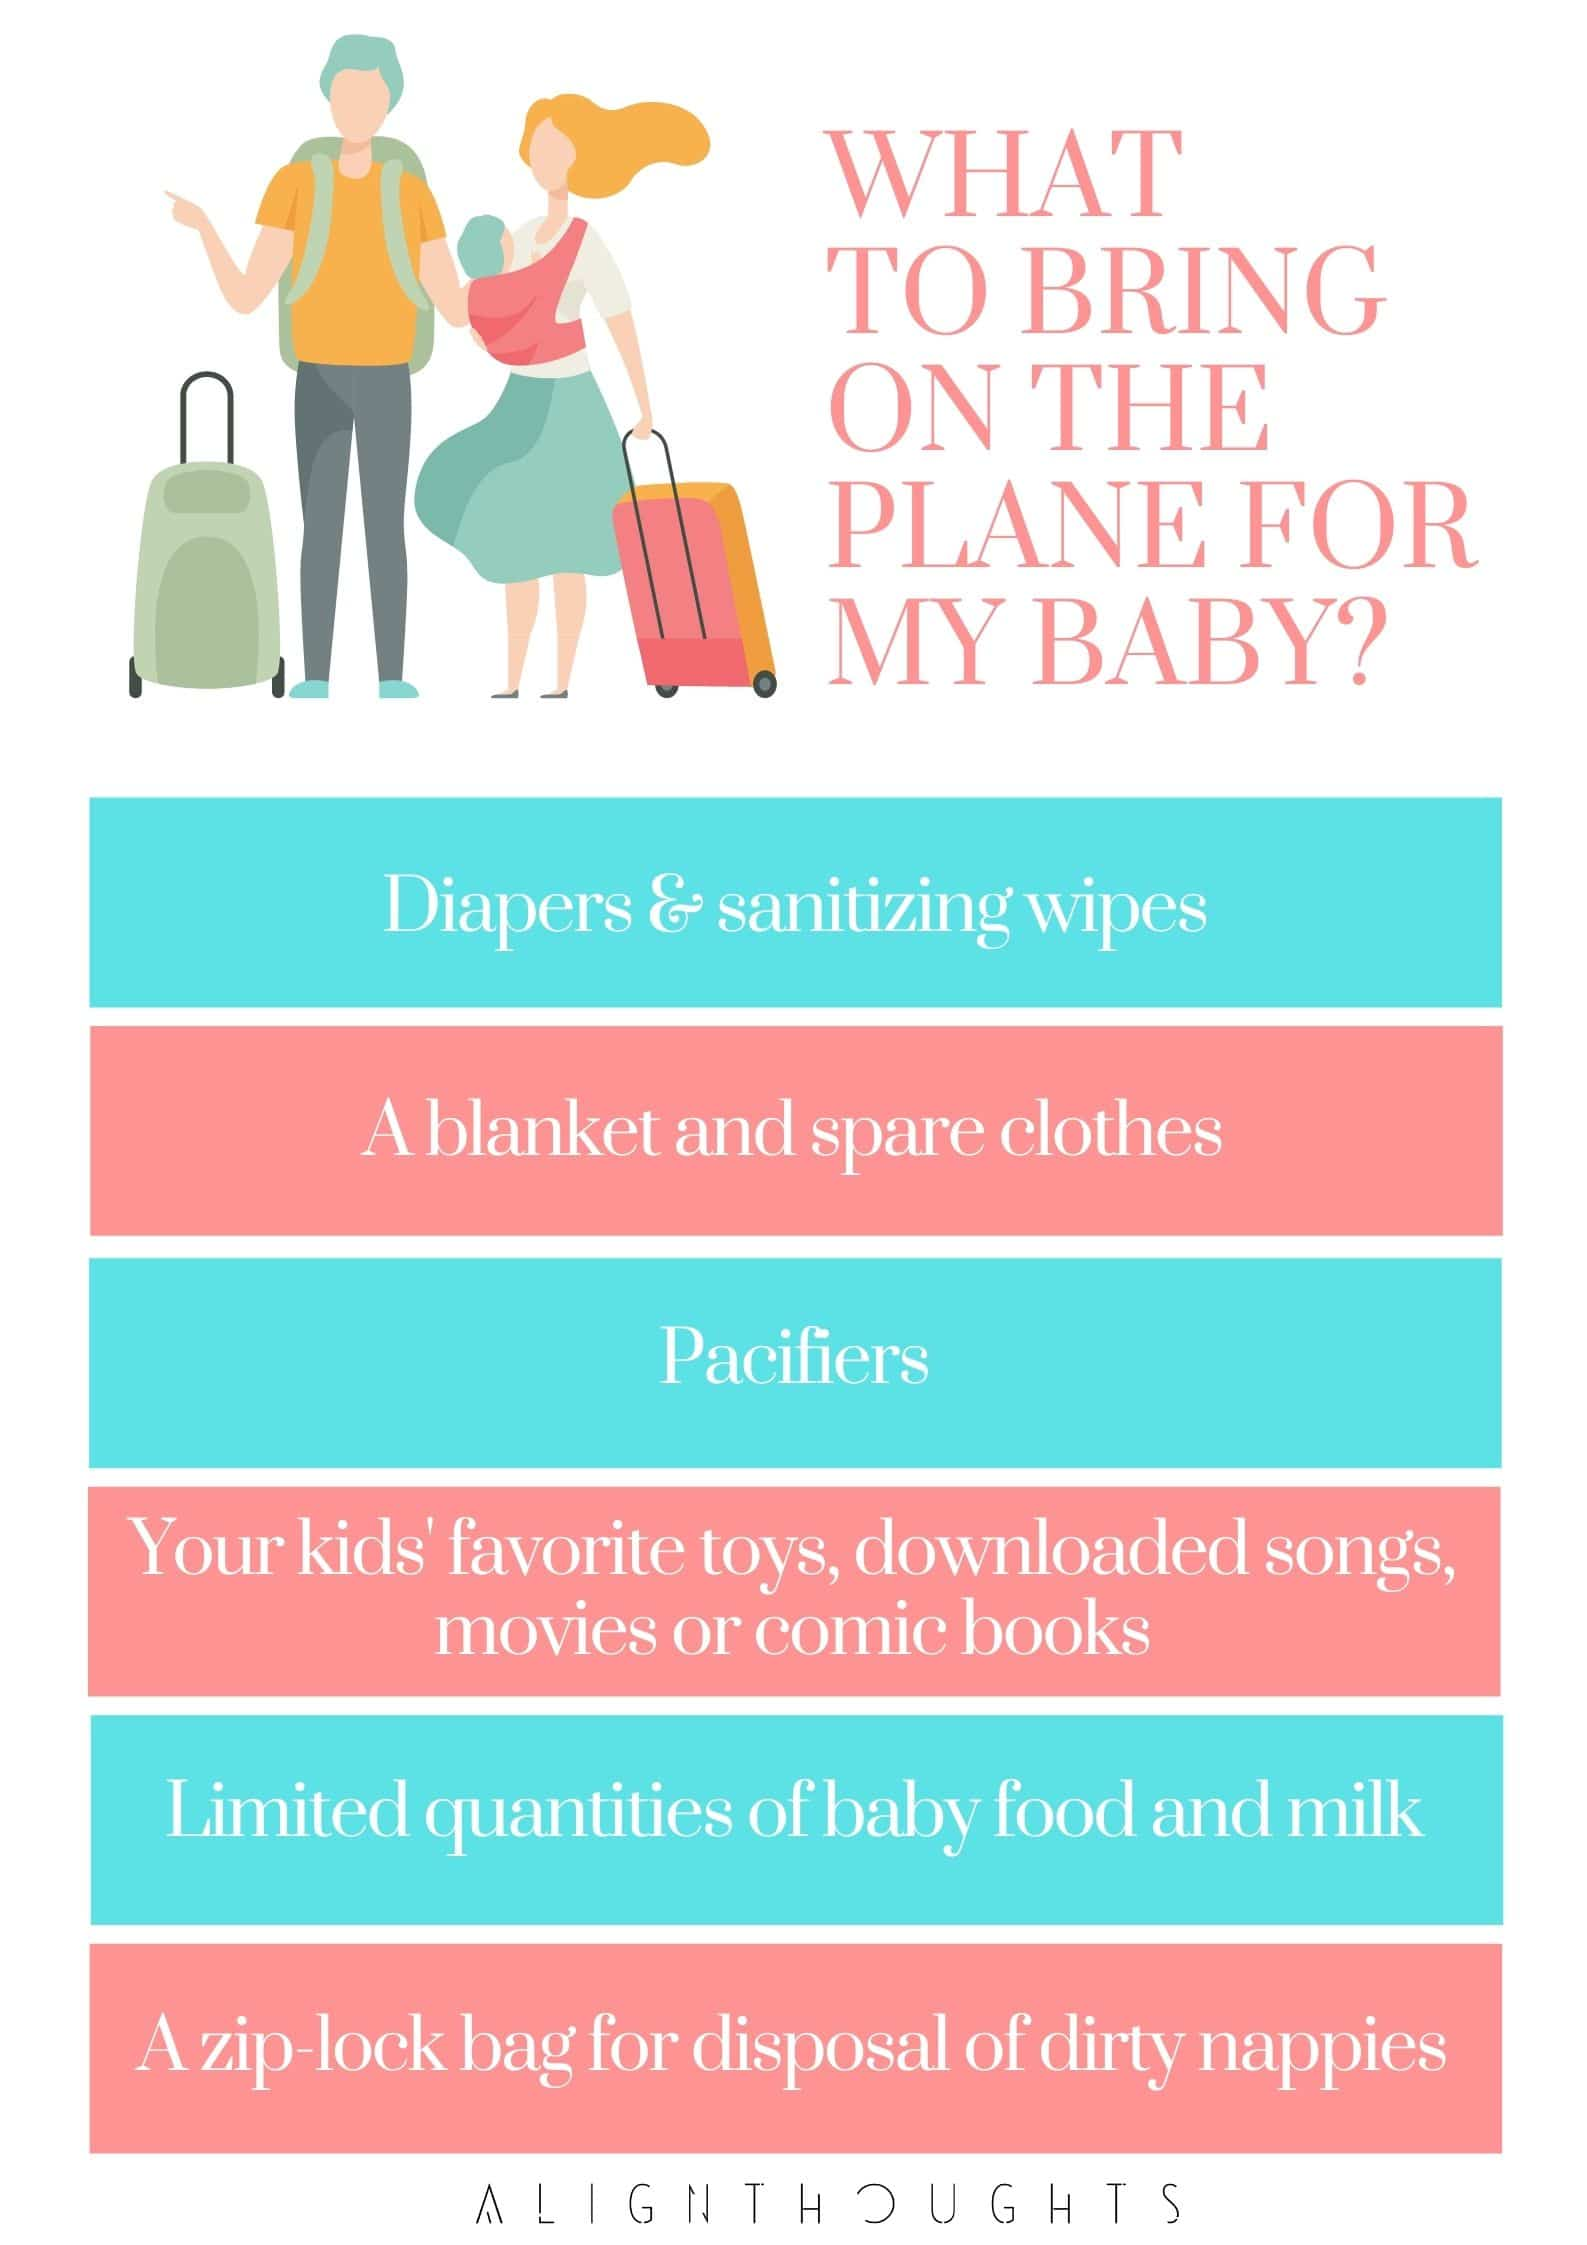 flying with infant baby tips-alignthoughts (1)